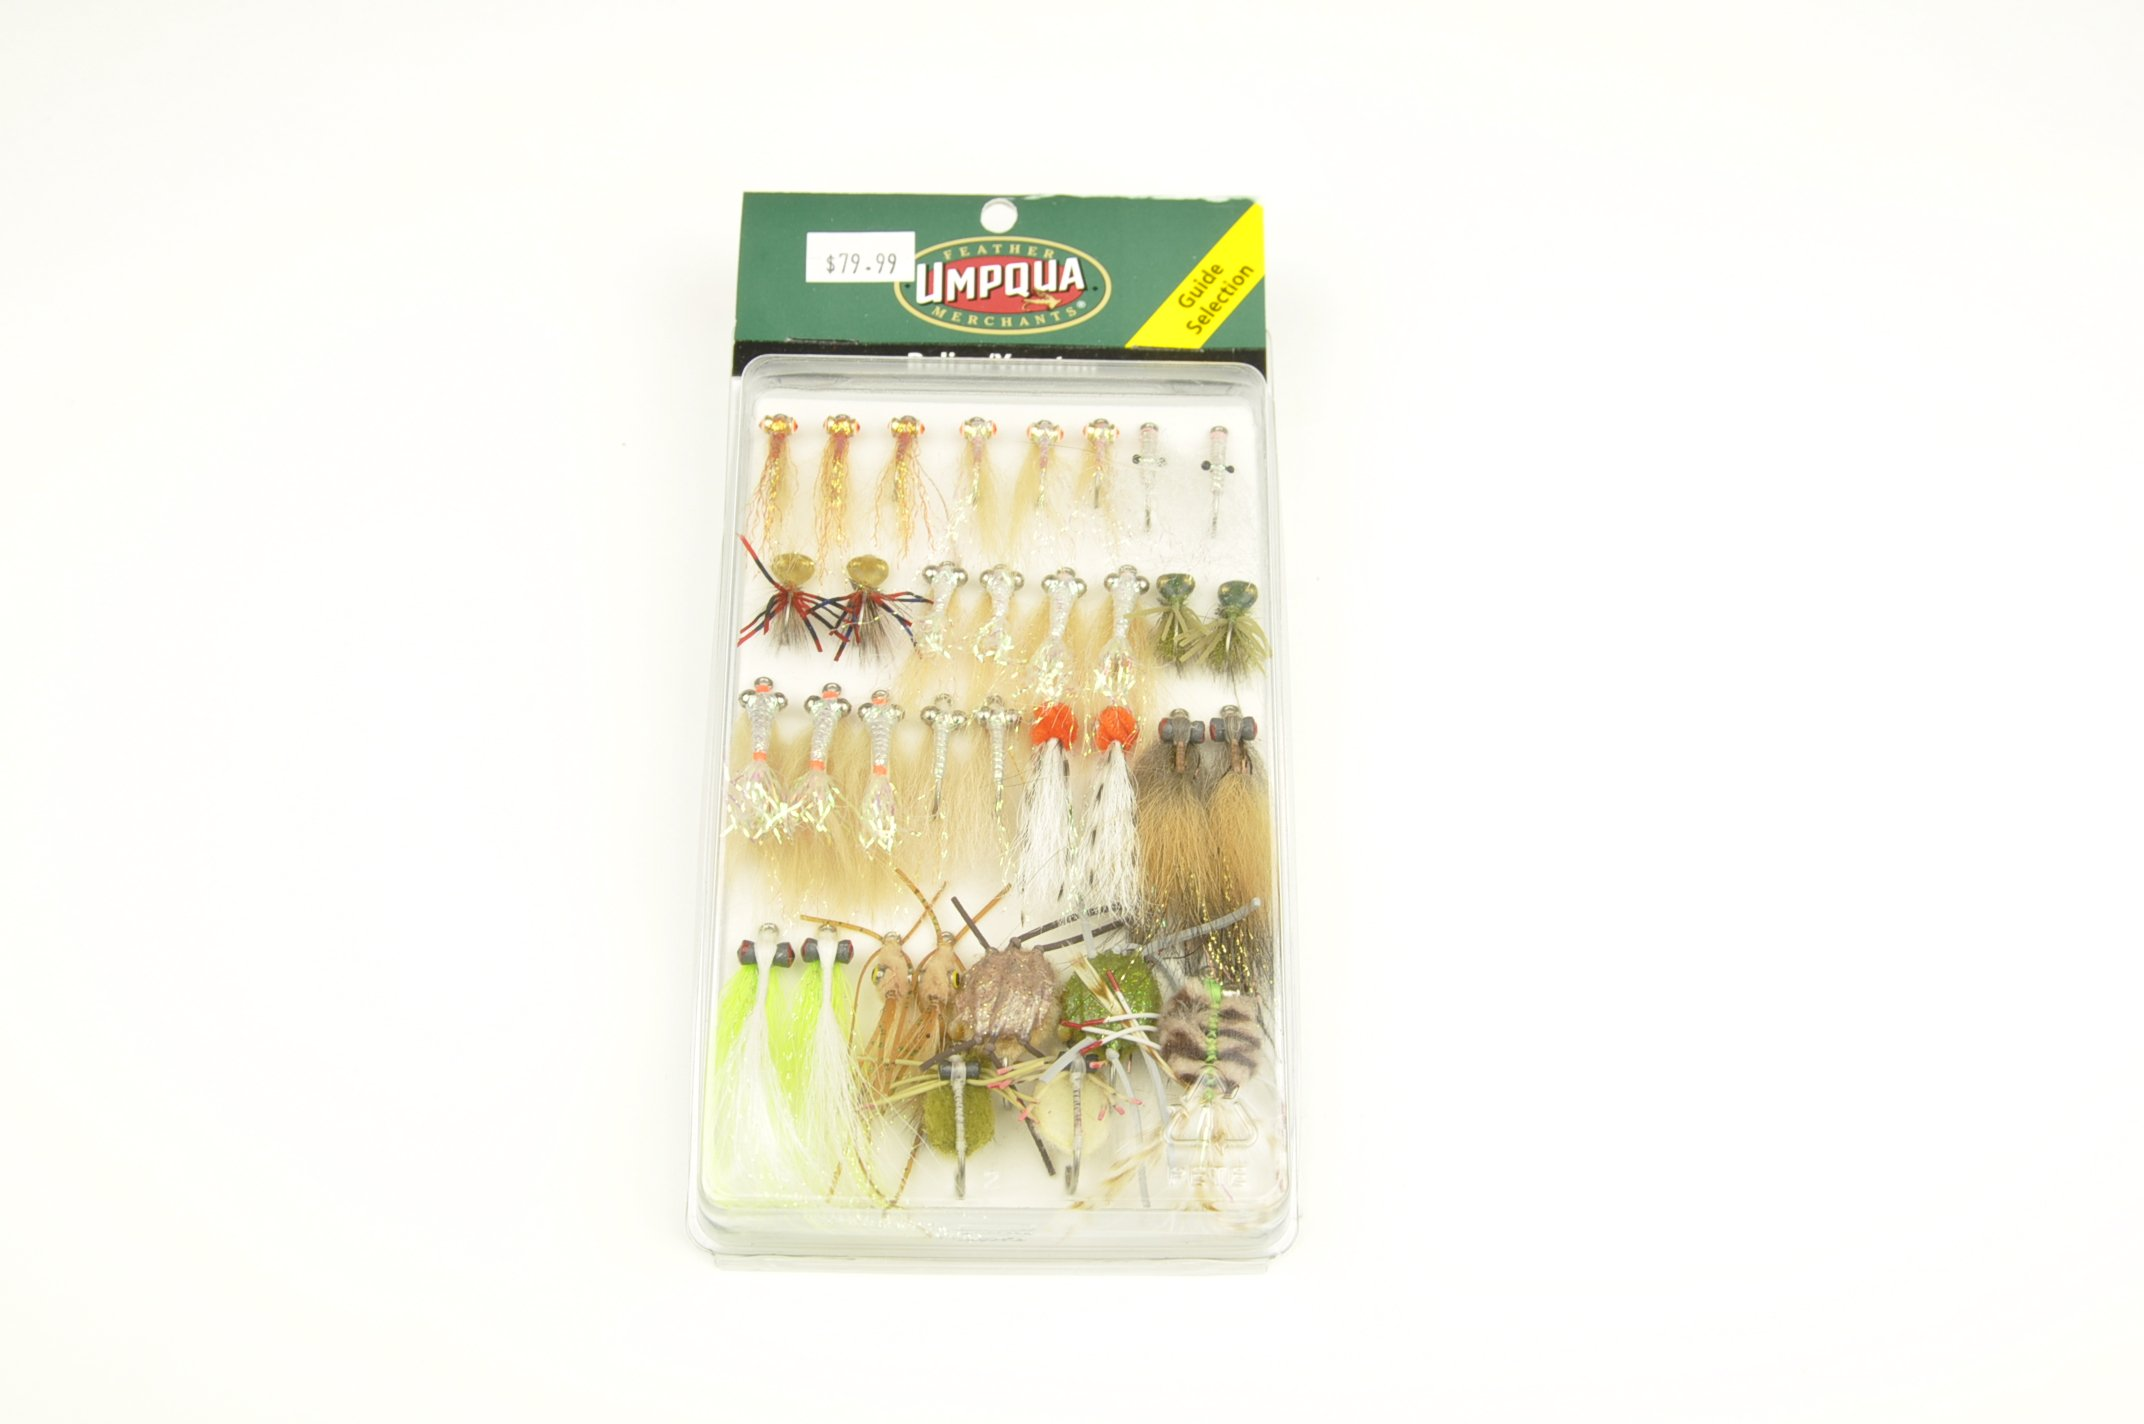 Umpqua Belize/Yucatan Guide Fly Selection